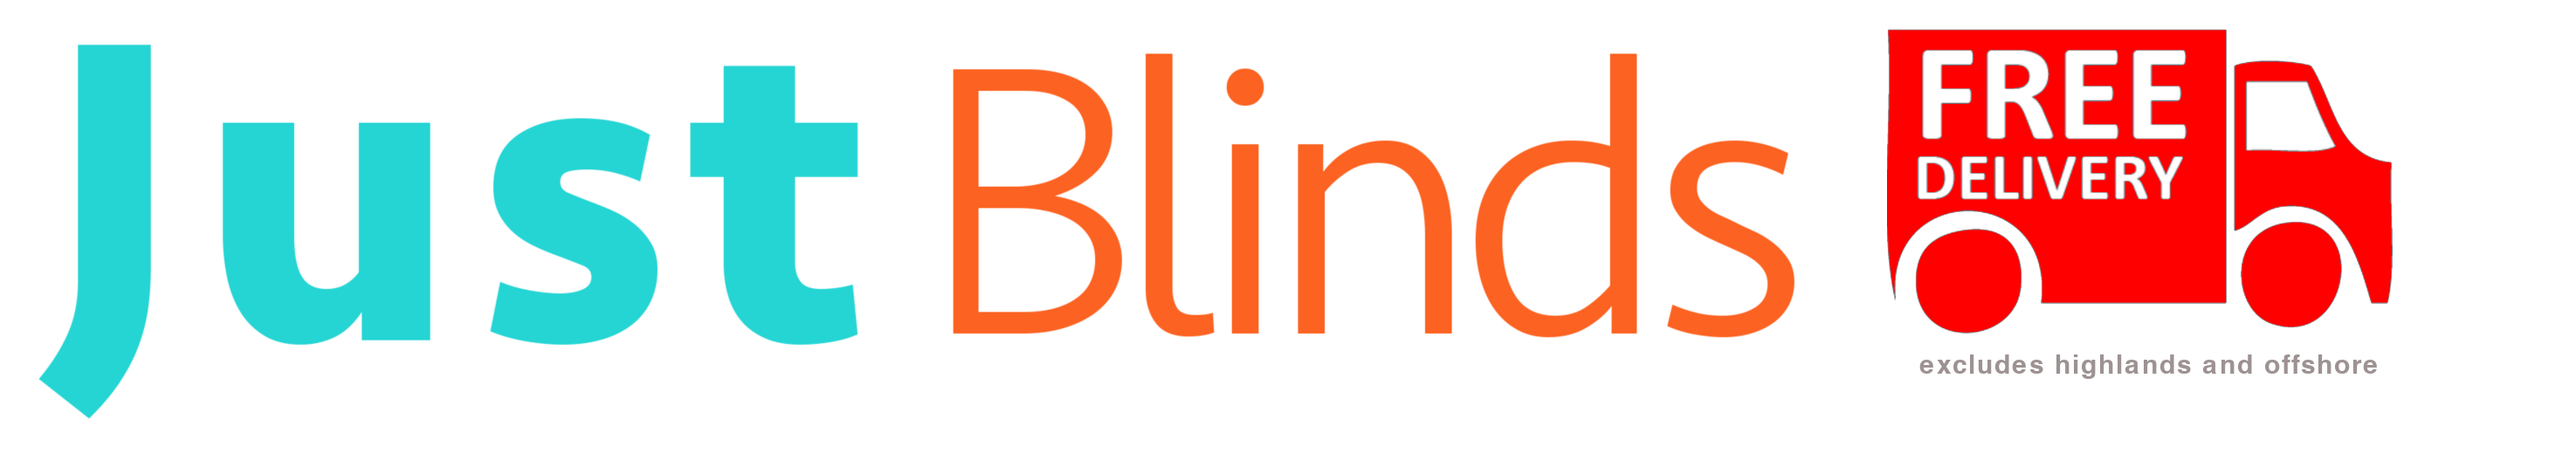 Just Blinds - Buy Made To Measure Blinds with free delivery